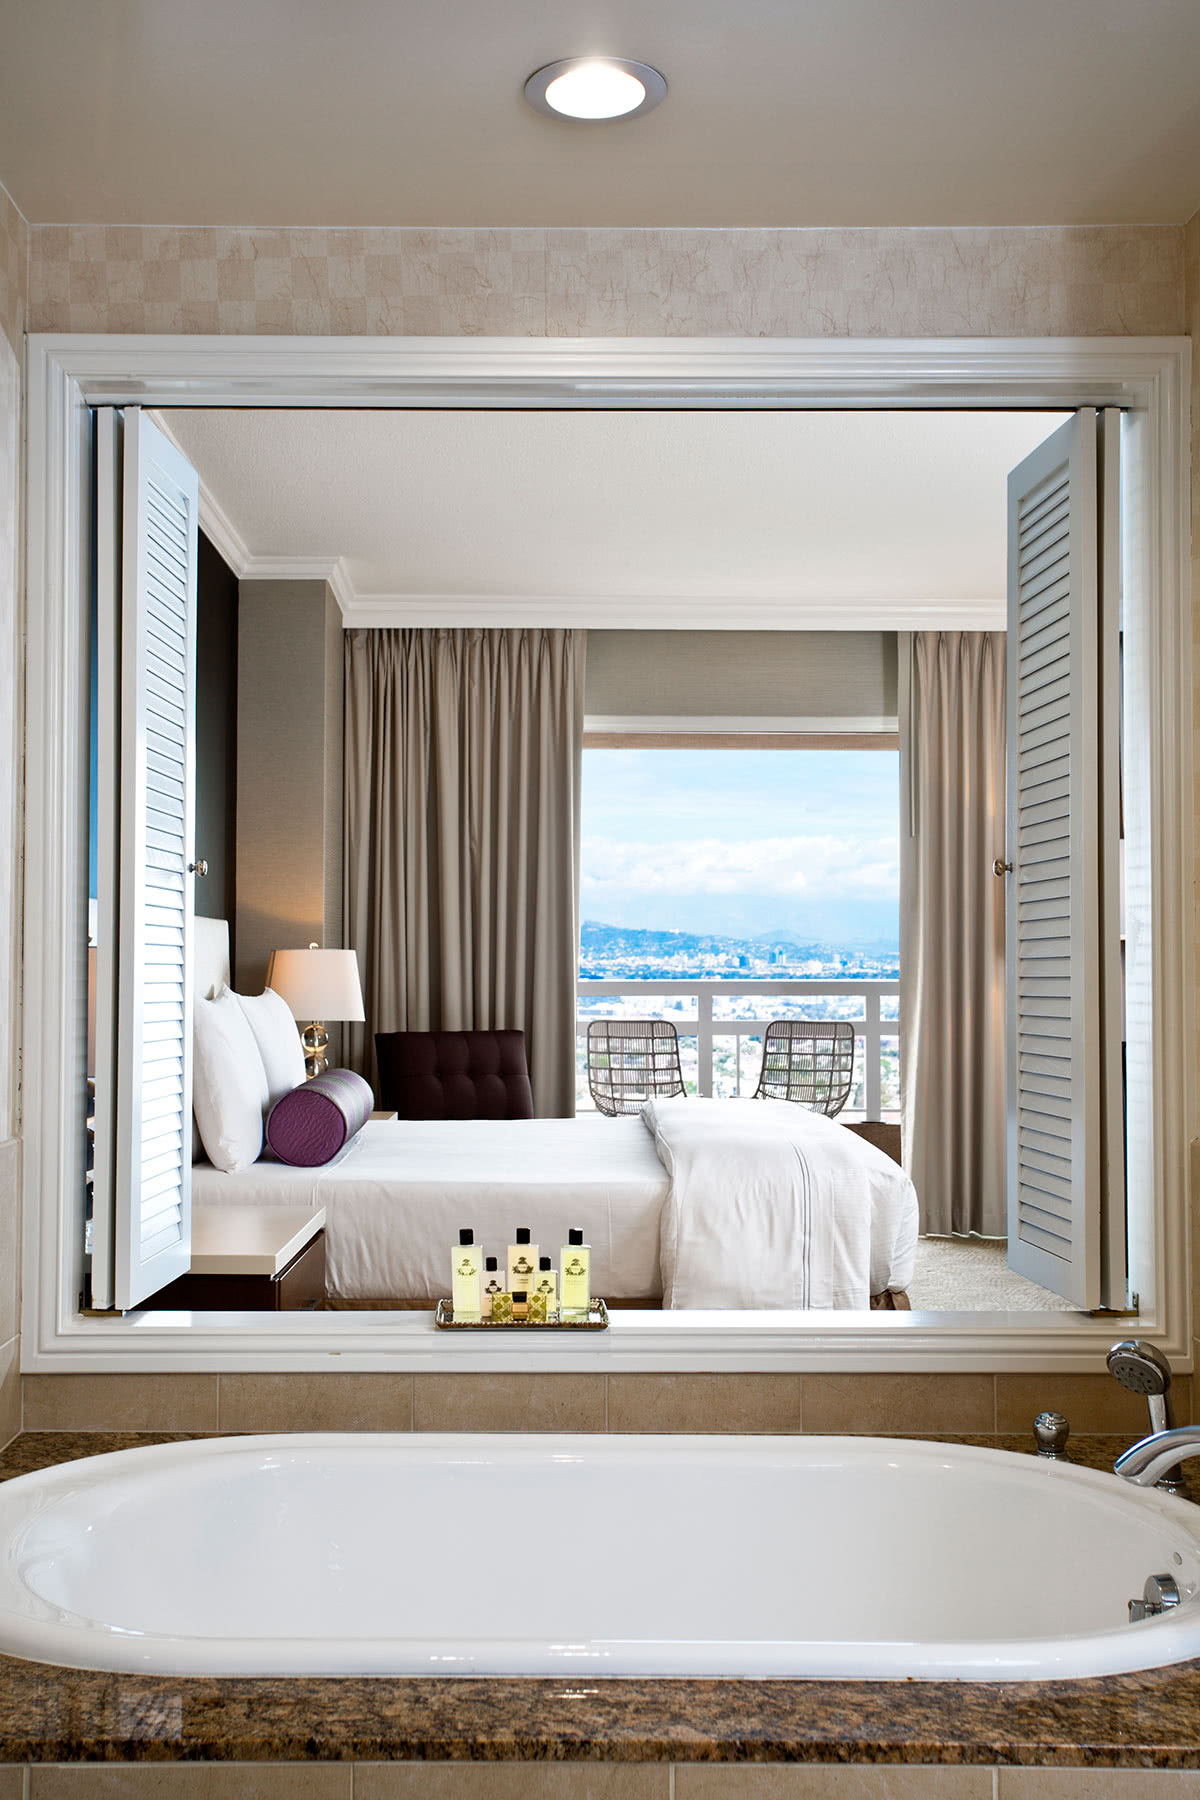 InterContinental Los Angeles review honeymoon suite - Luxe Digital